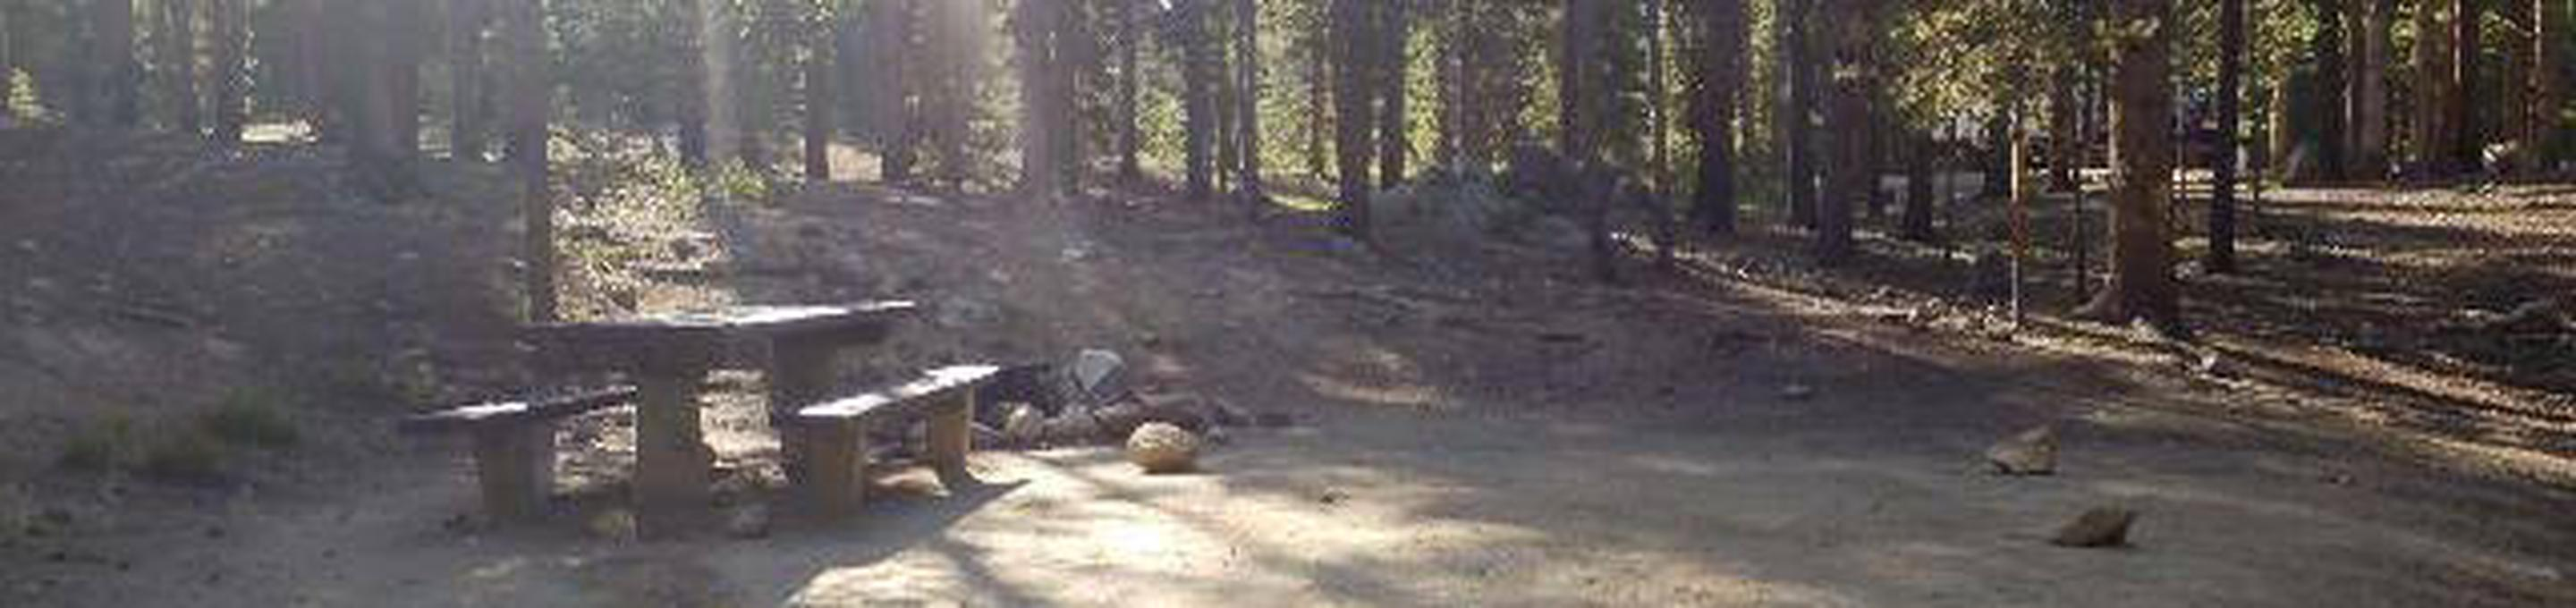 Molly Brown Campground, site 23